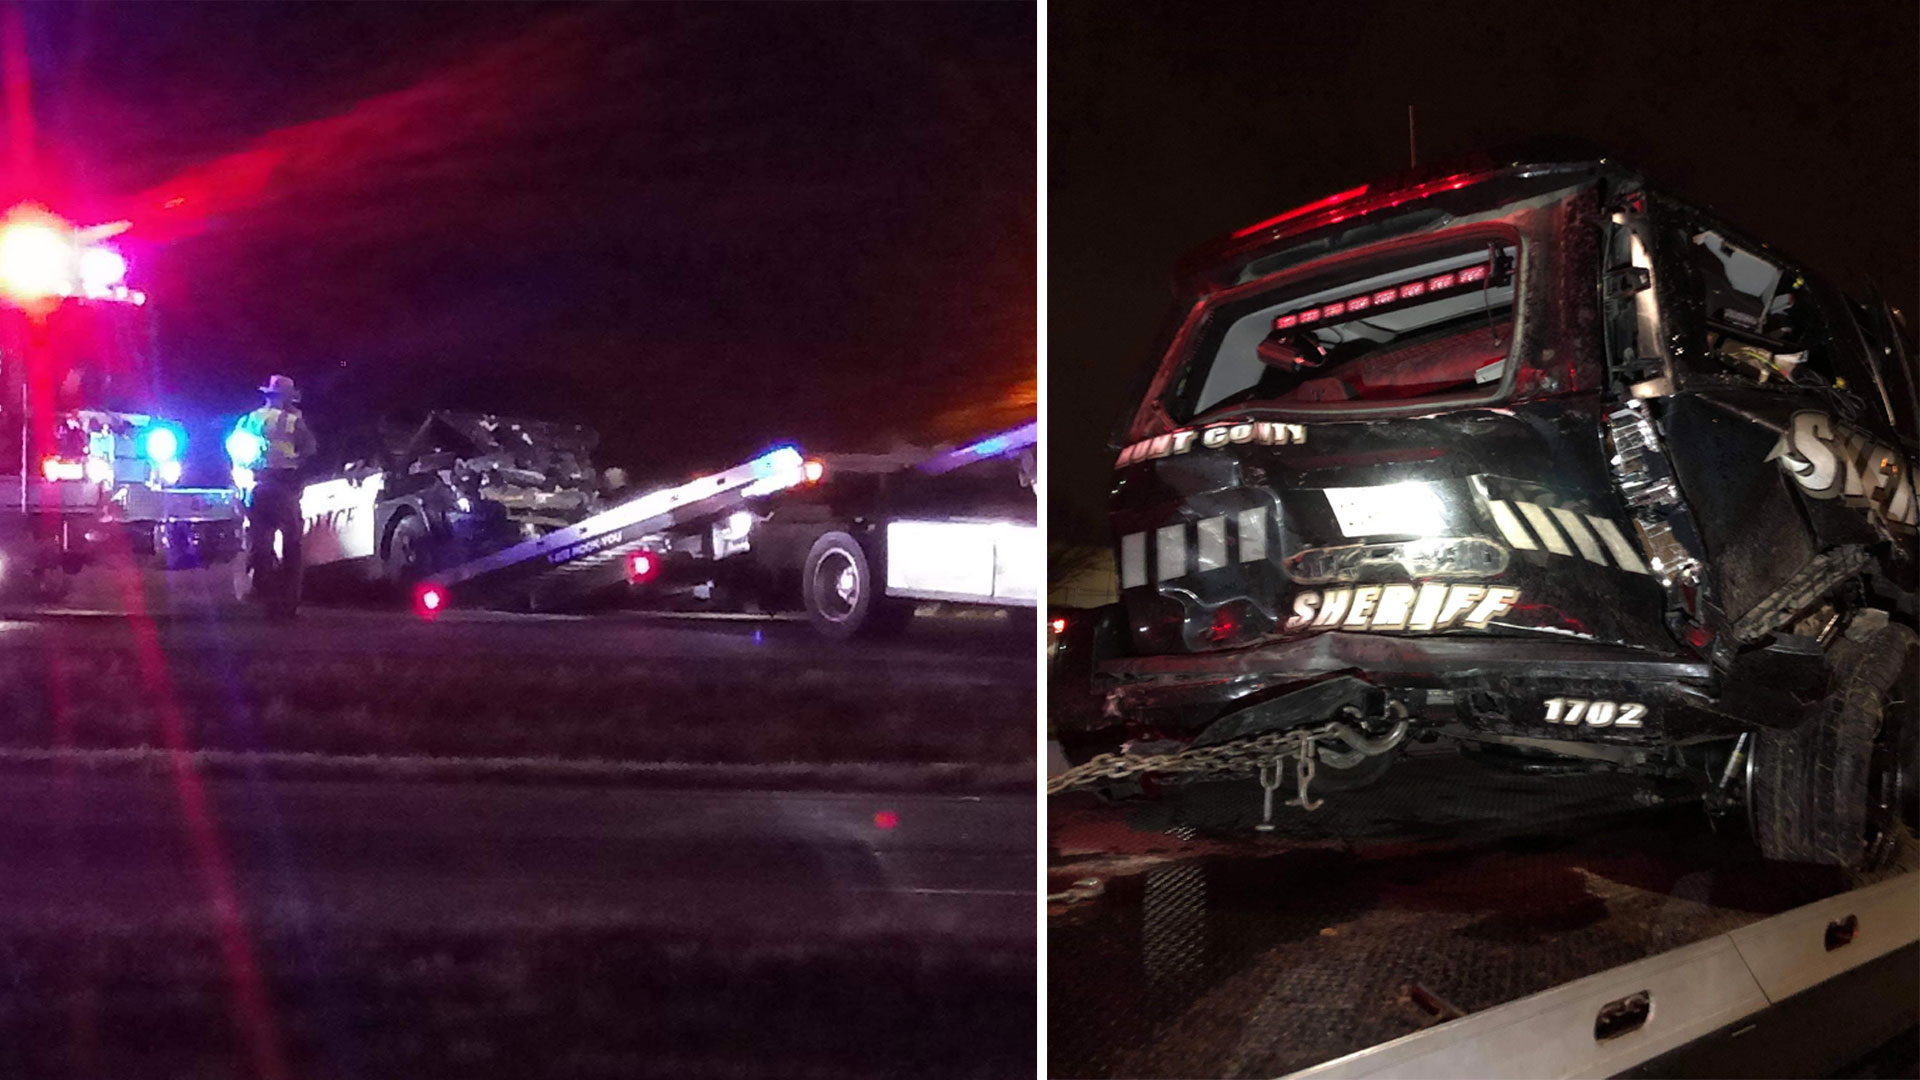 2 Squad Cars Collide During High Speed Chase in Hunt County